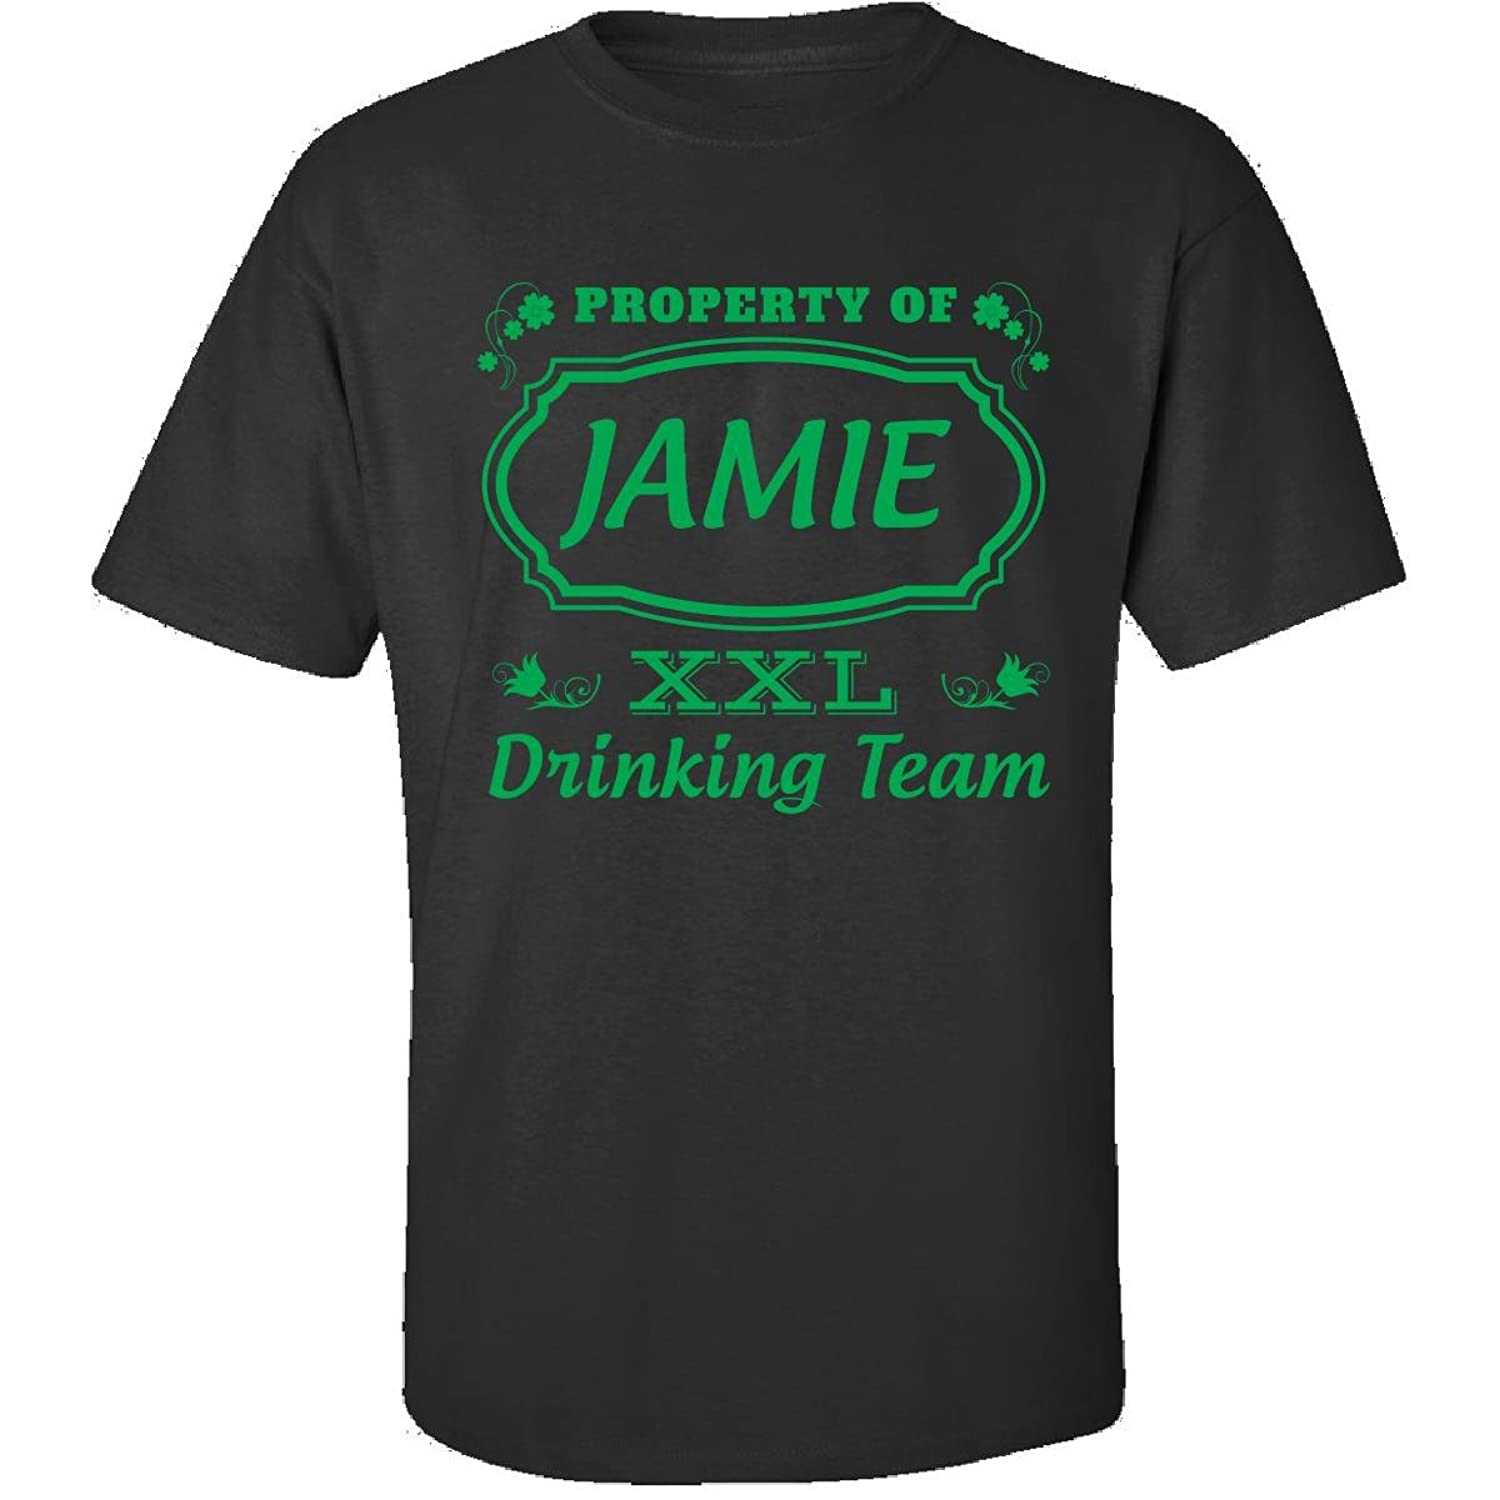 Property Of Jamie St Patrick Day Beer Drinking Team - Adult Shirt